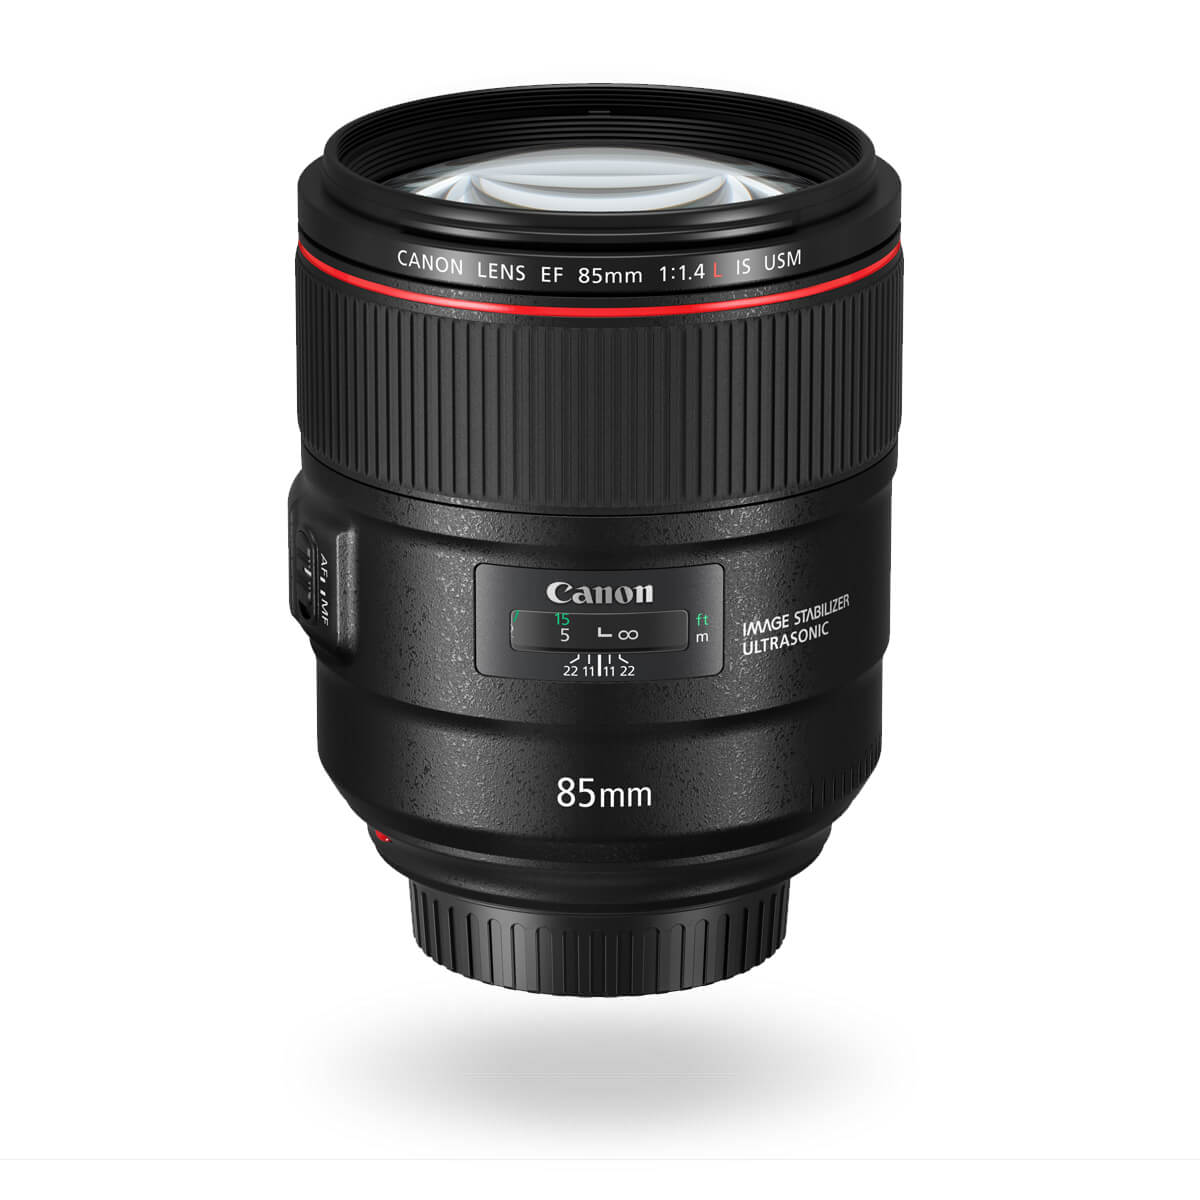 EF-S 15-85mm f/3.5-5.6 IS USM lens